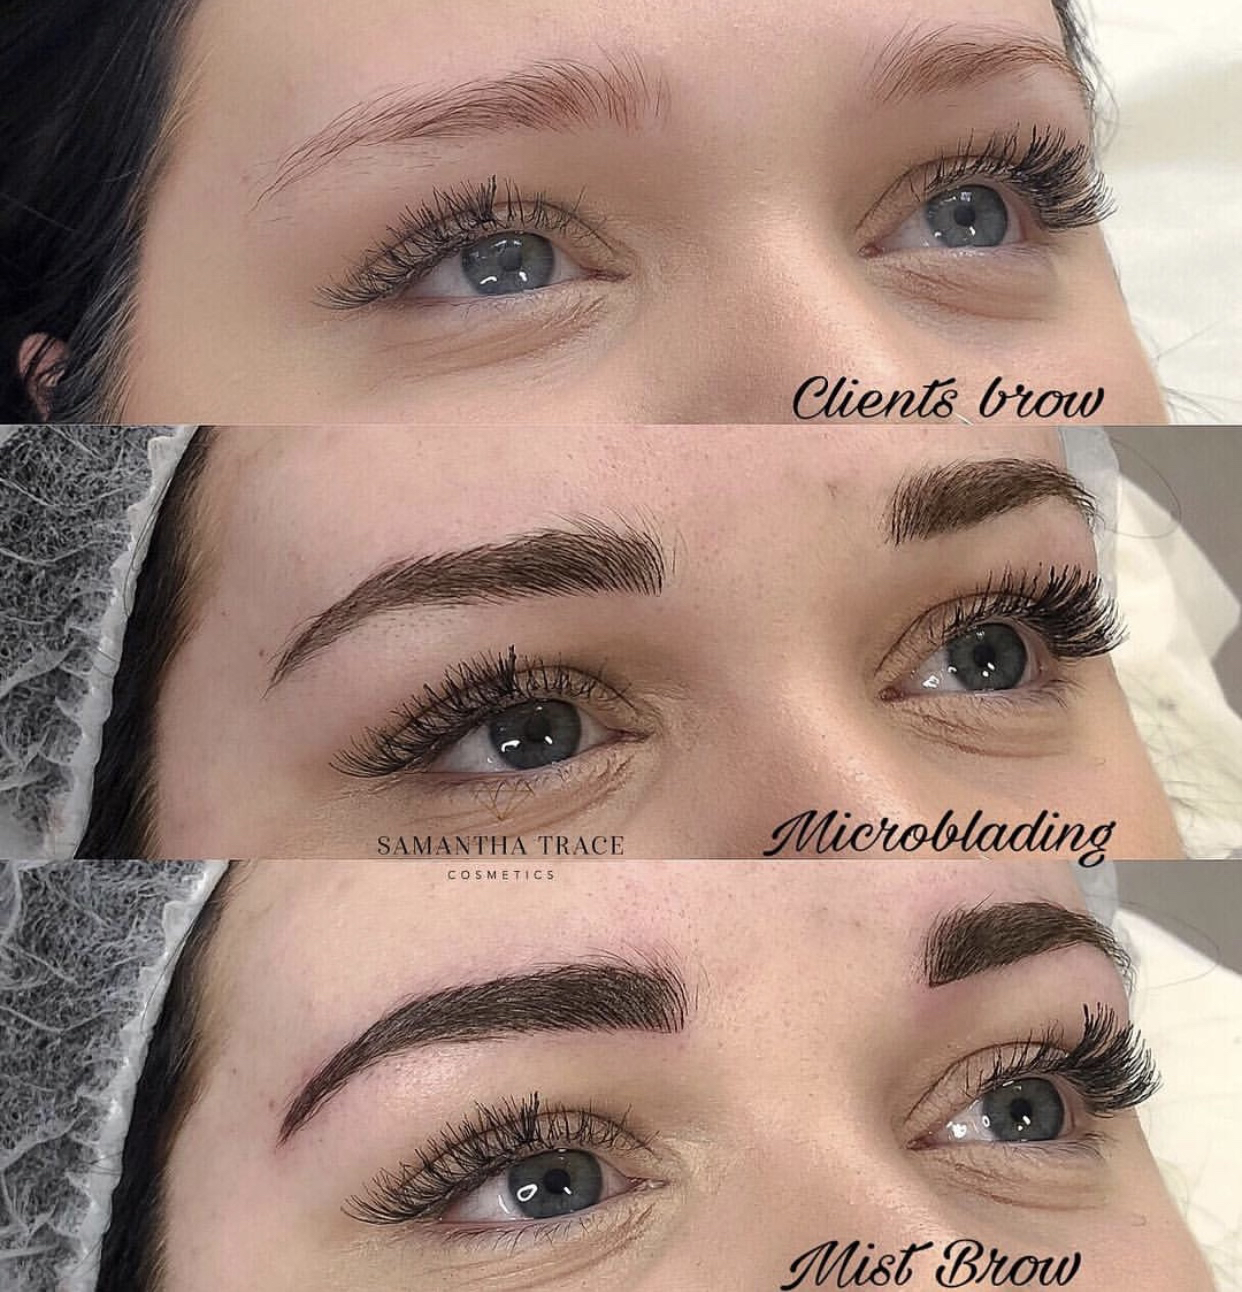 Mist Brows 3 tier